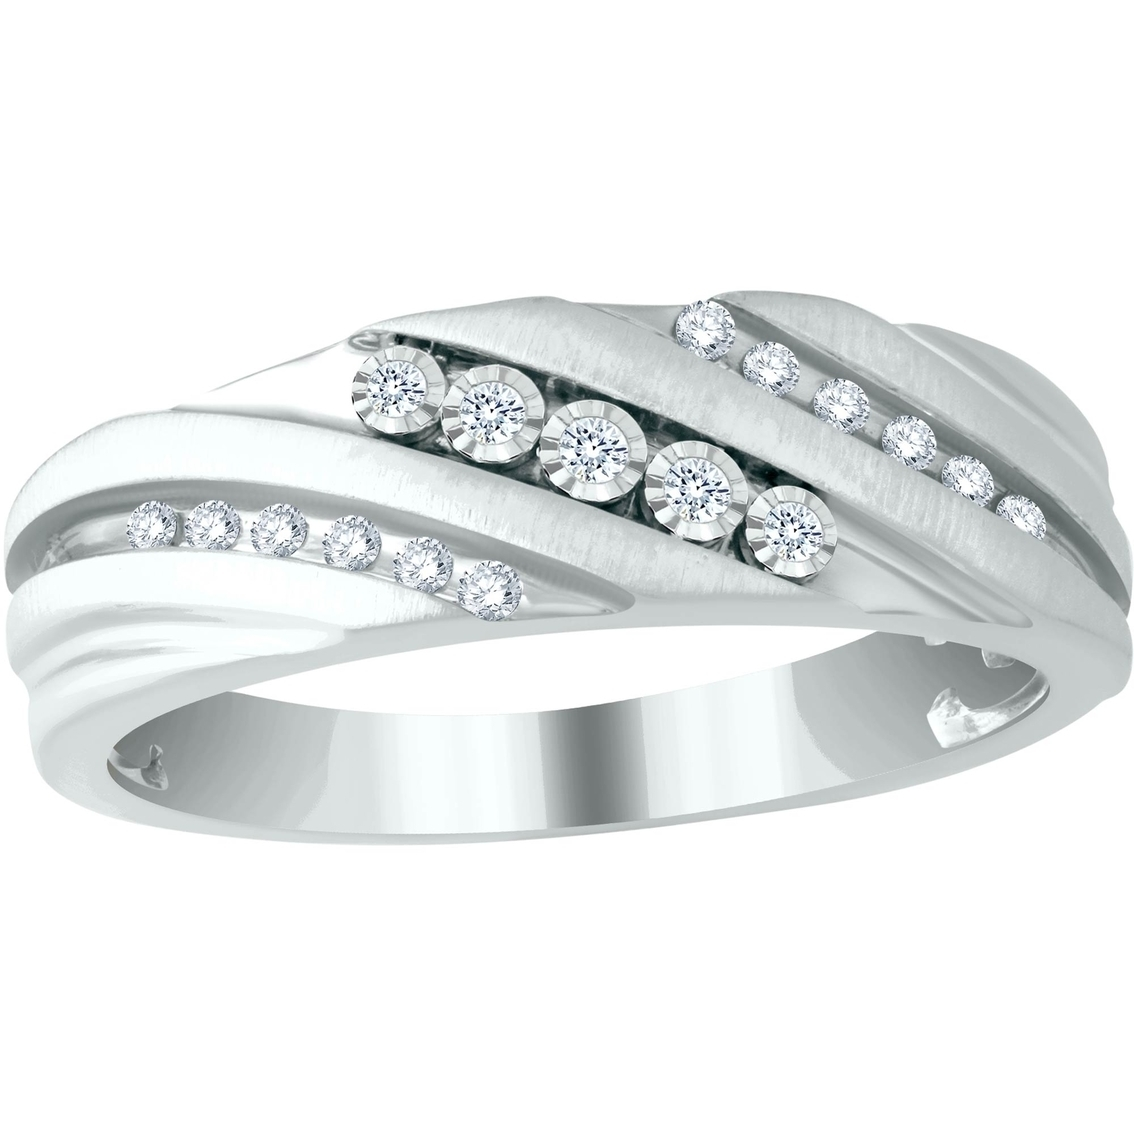 Expressions Of Love 10K White Gold 1/7 Ctw Diamond Slant Band, Size Intended For Most Up To Date Diamond Three Stone Slant Wedding Bands In 10K White Gold (Gallery 3 of 15)